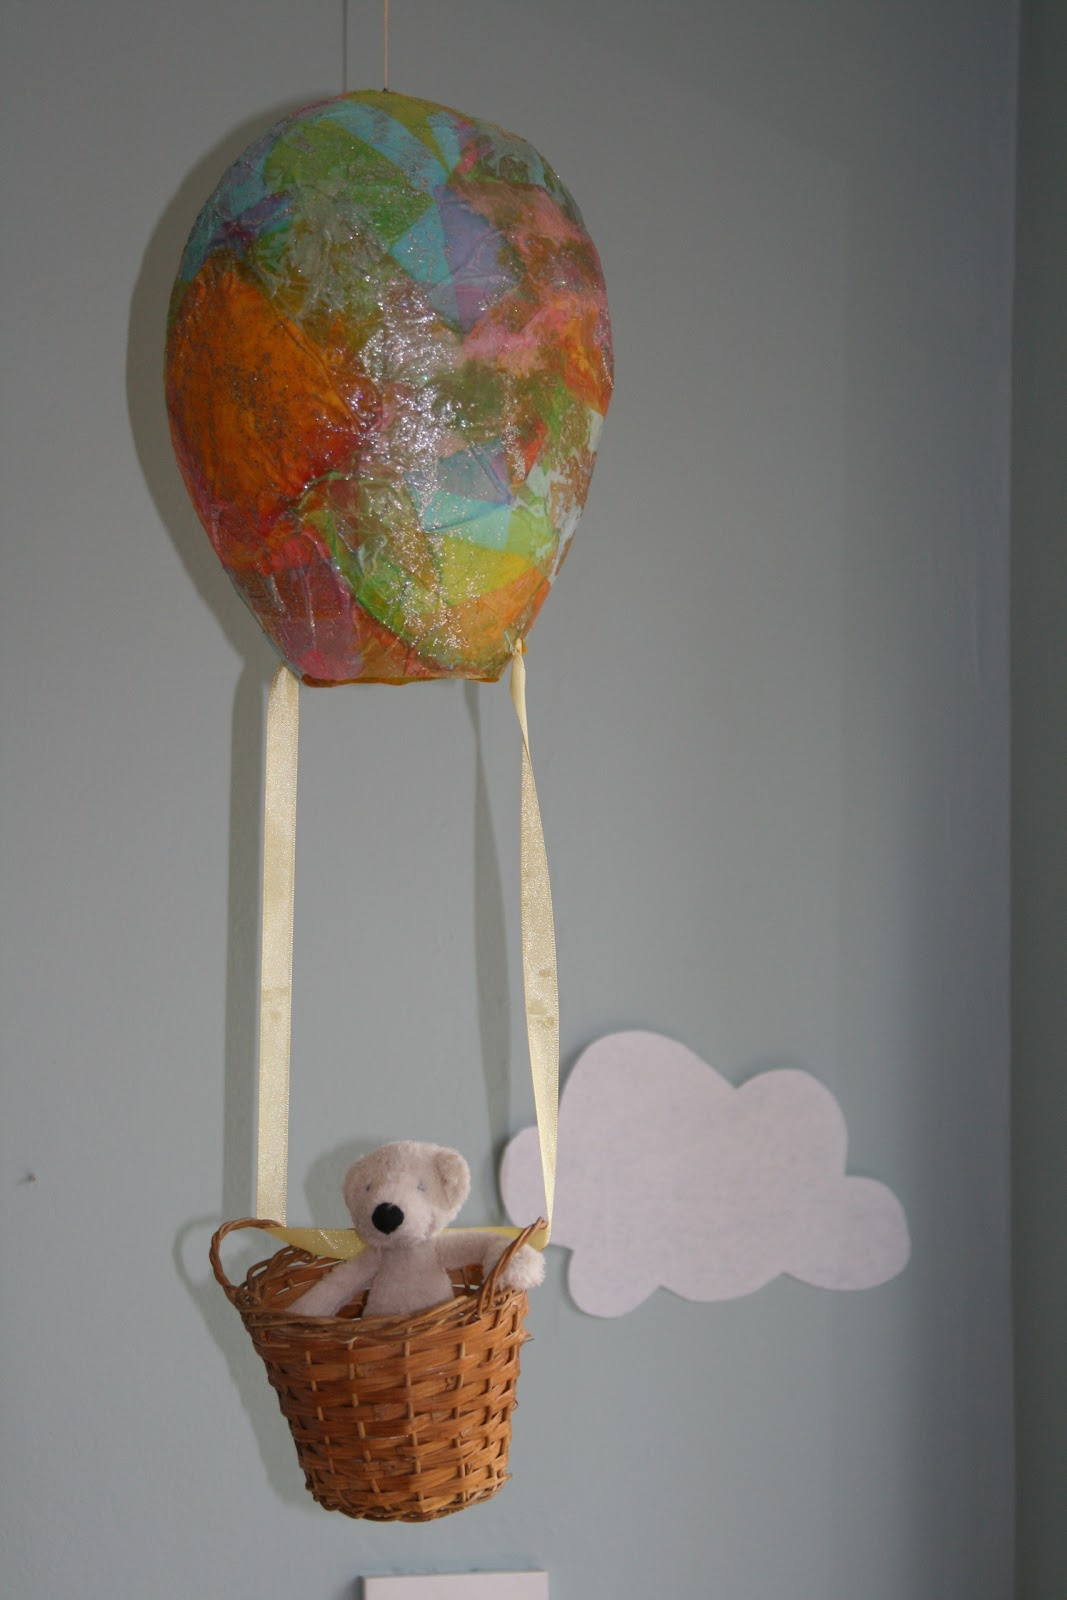 paper mache hot air balloon for oral storytelling the imagination tree. Black Bedroom Furniture Sets. Home Design Ideas